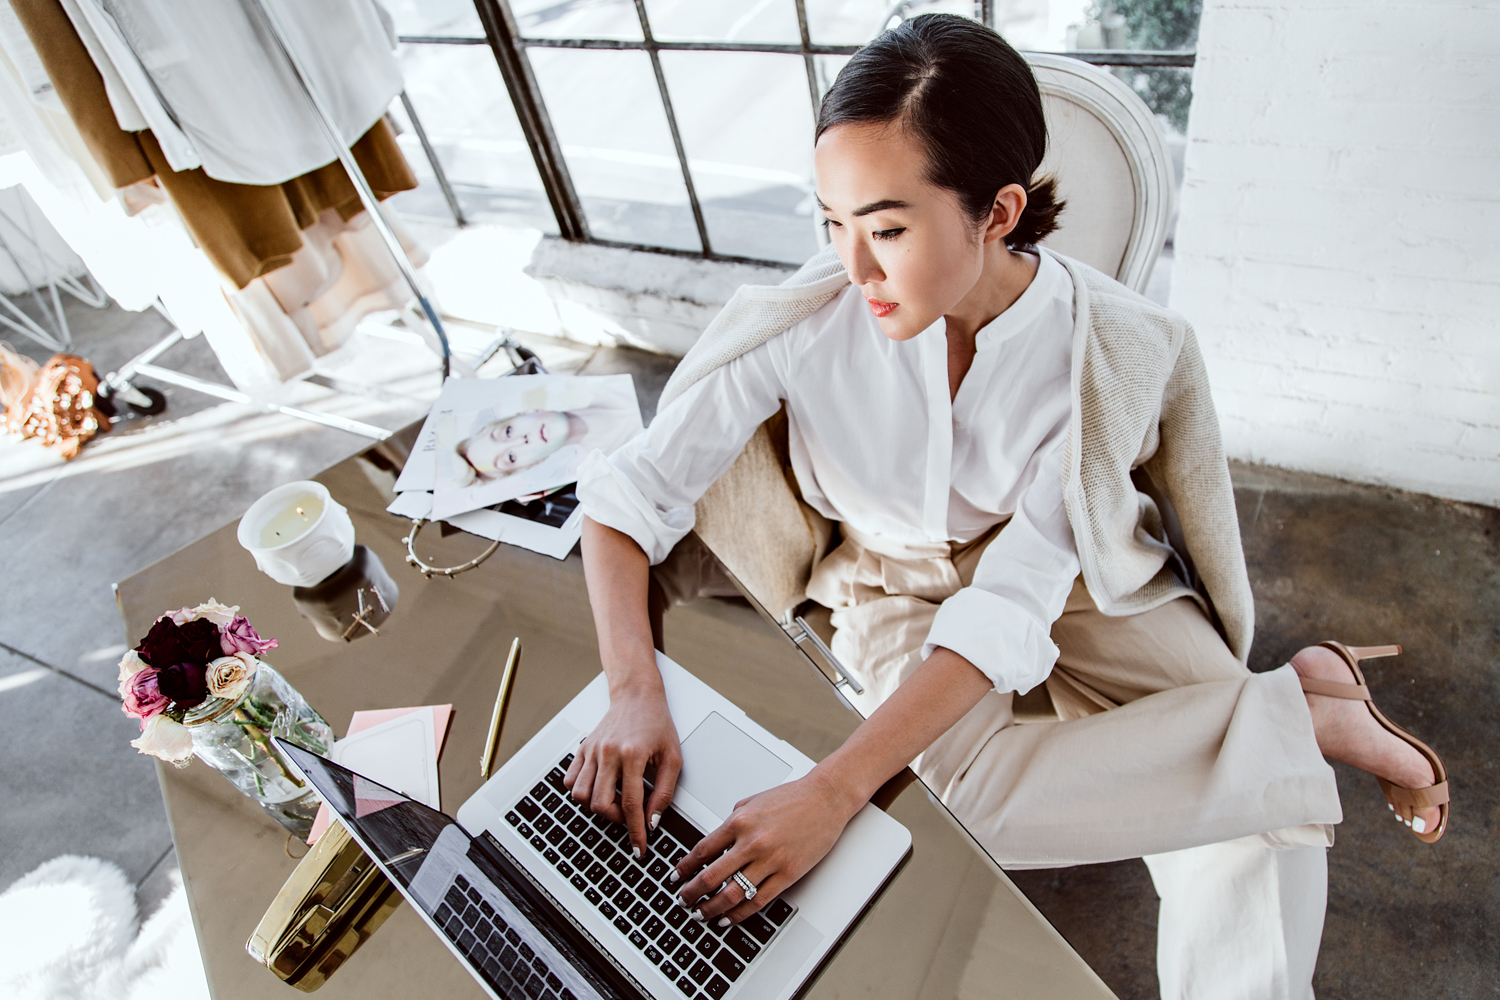 7 Quick Tips To Help You Start A Home-Based Business